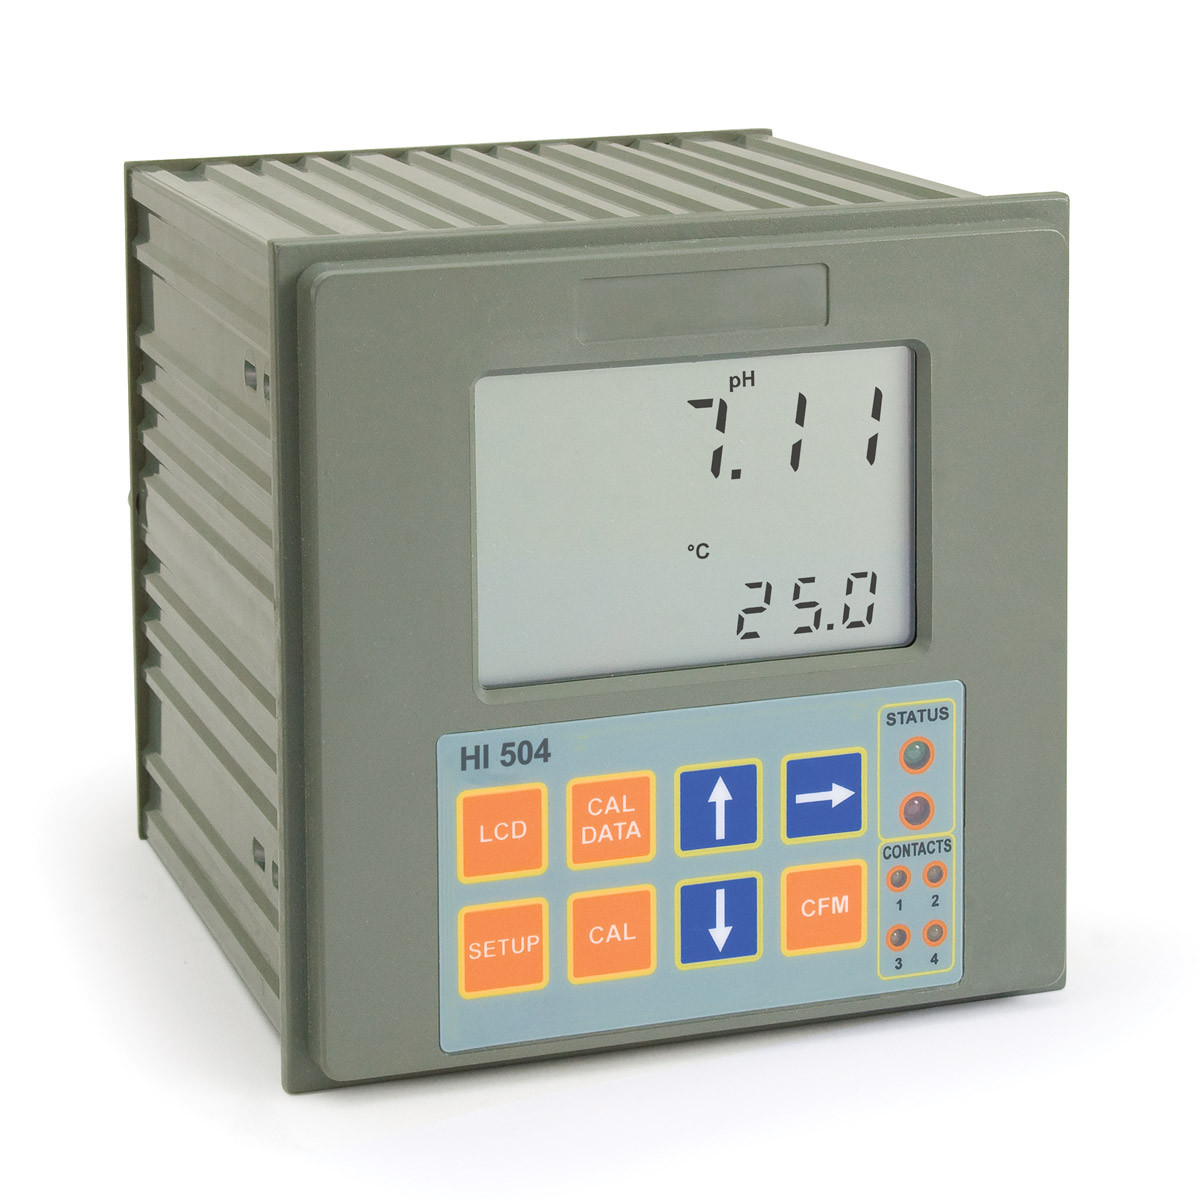 pH/ORP Digital Controller with Tele-Control™ and Sensor Check™